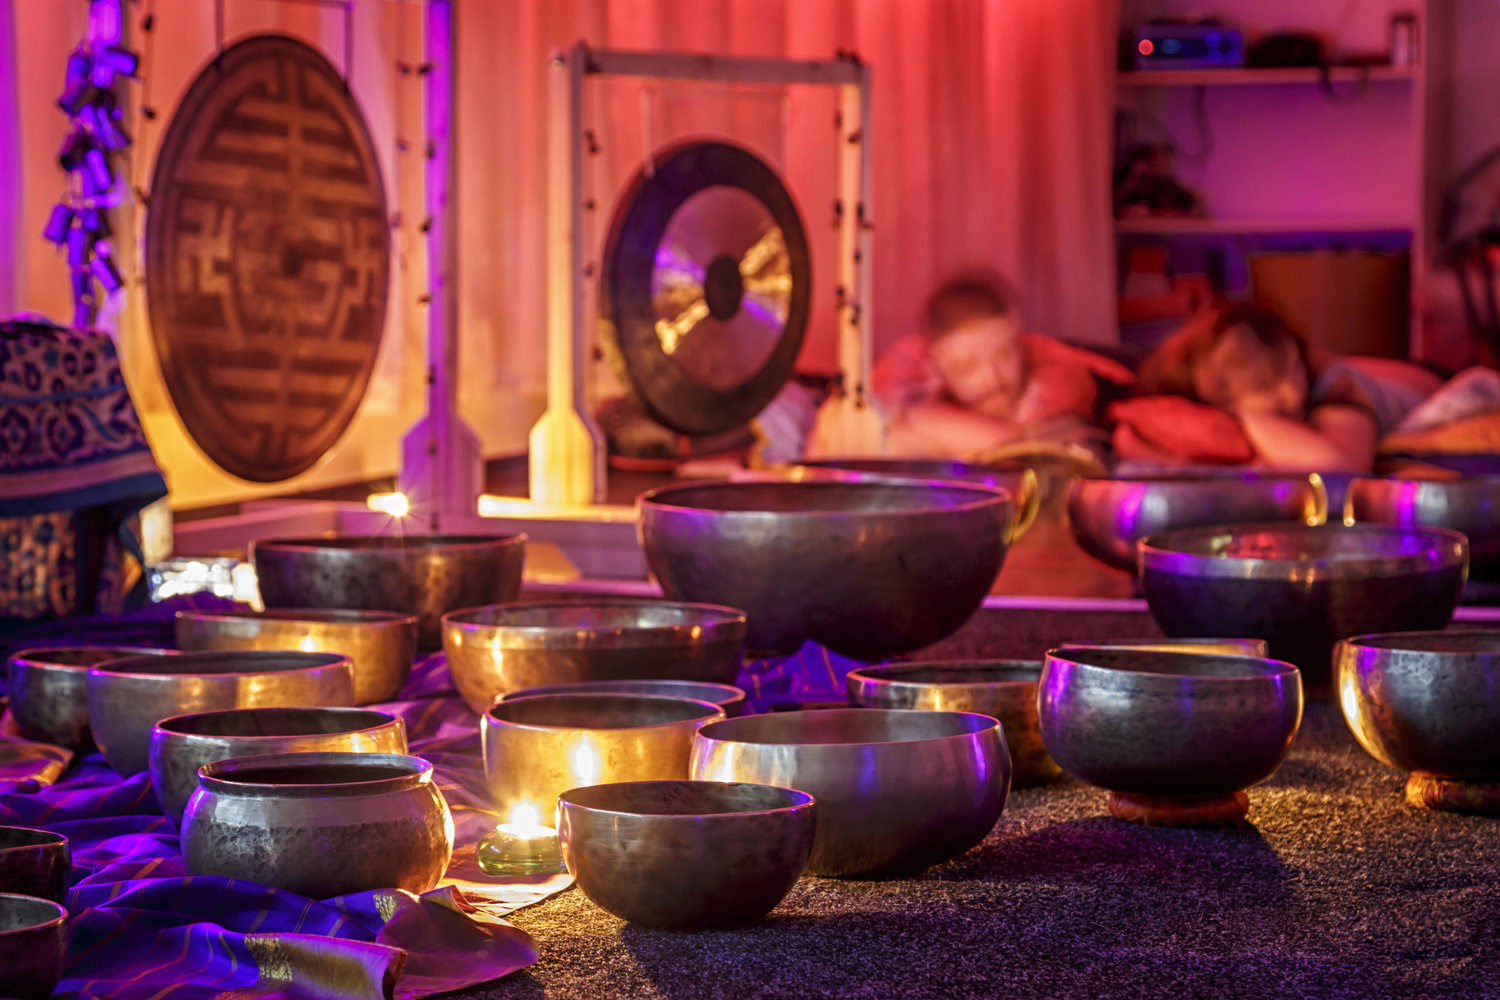 About the Sound Healing Academy